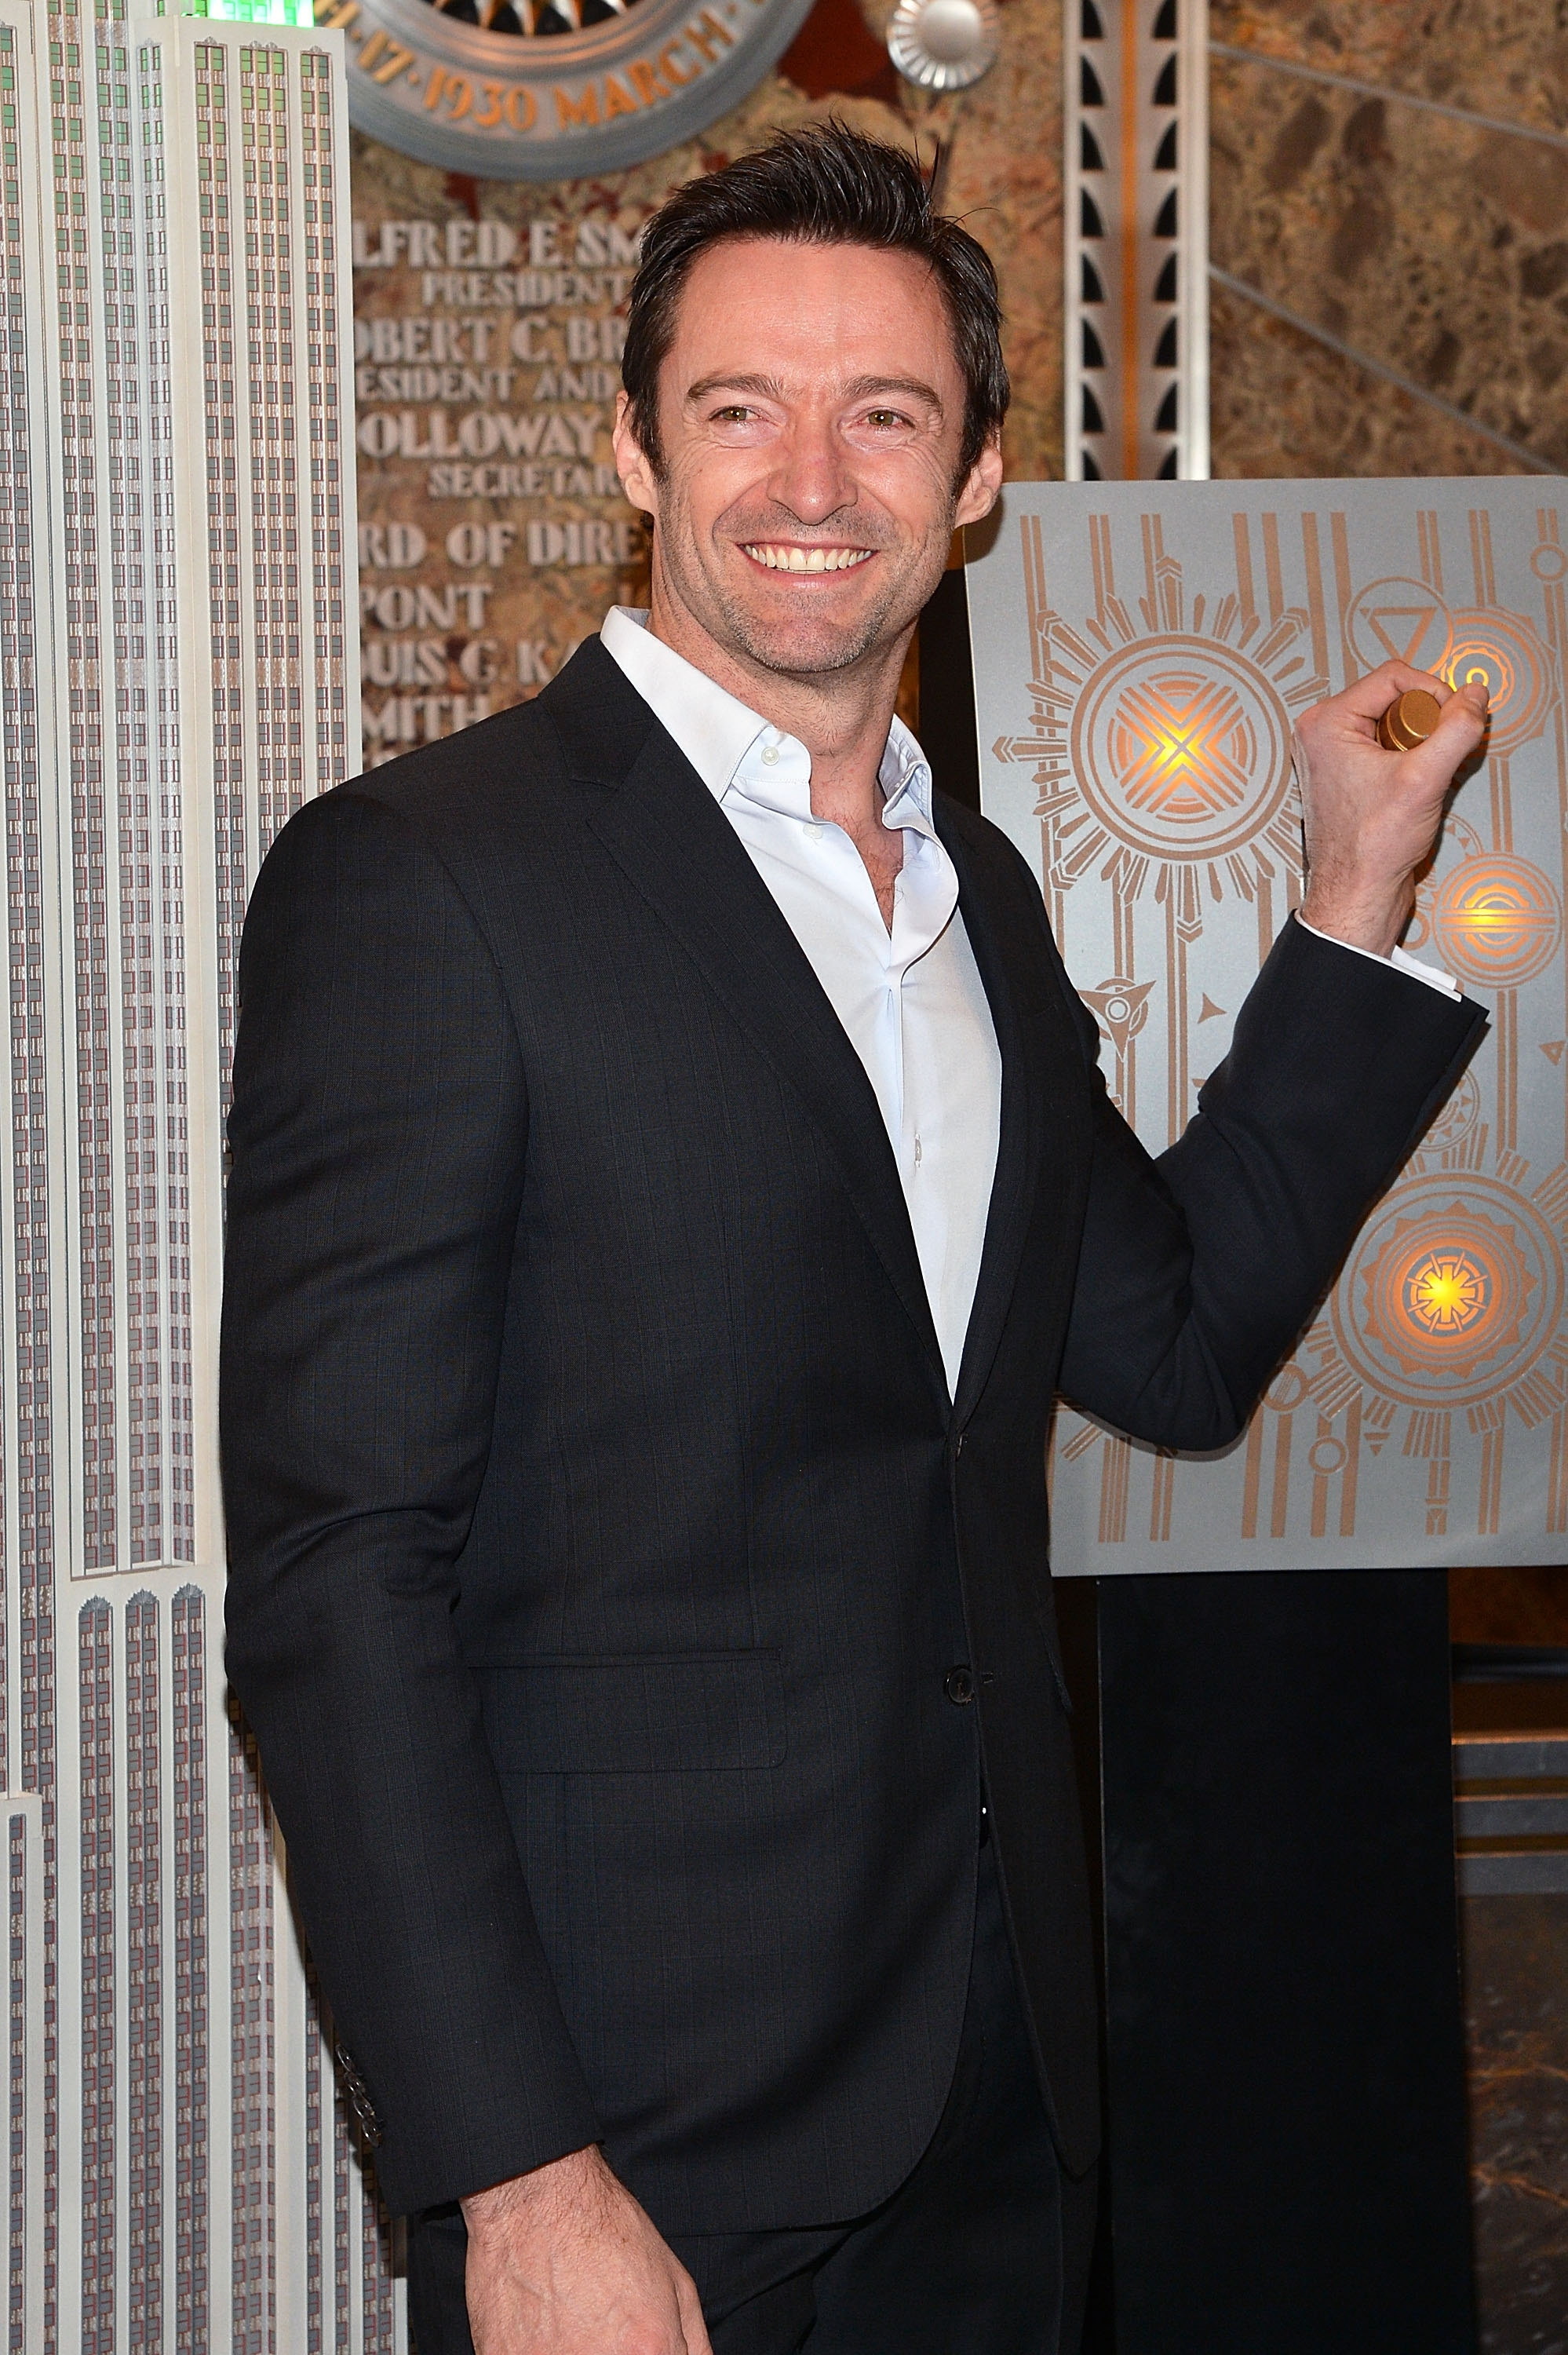 Actor Hugh Jackman lights The Empire State Building for Australia Day on Friday.  (Photo by Slaven Vlasic/Getty Images)